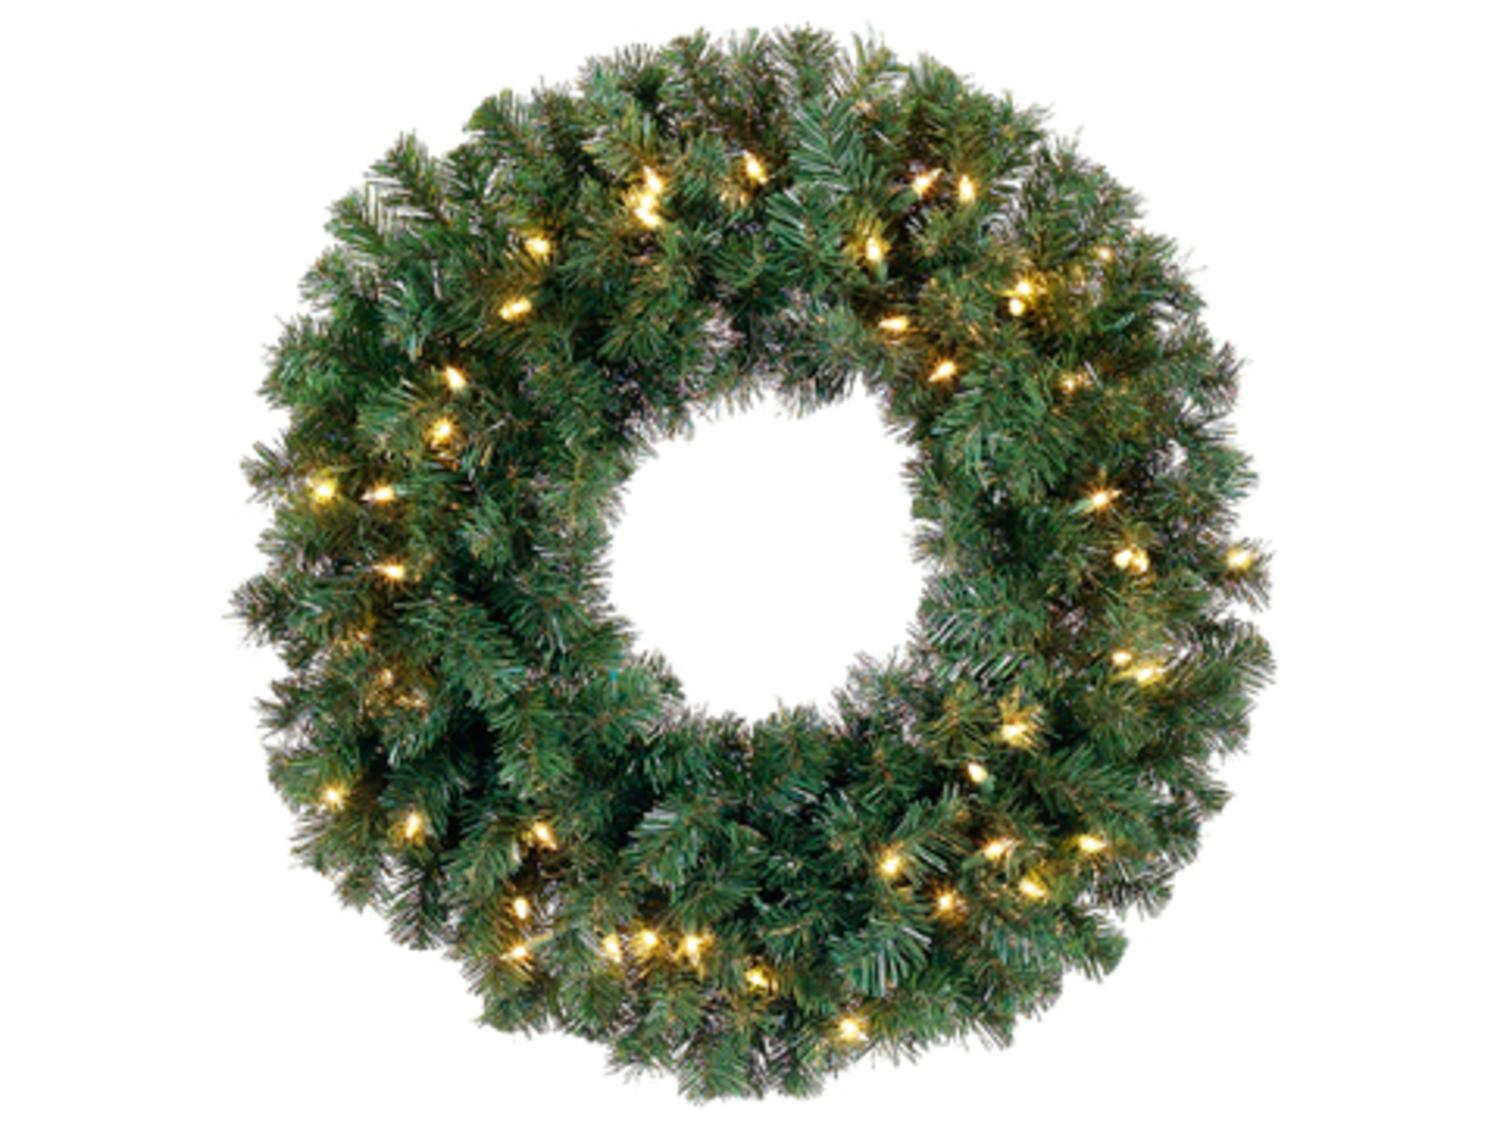 national tree 24 norwood fir wreath with 50 warm white battery operated led lights with timer walmartcom - Christmas Wreaths With Lights